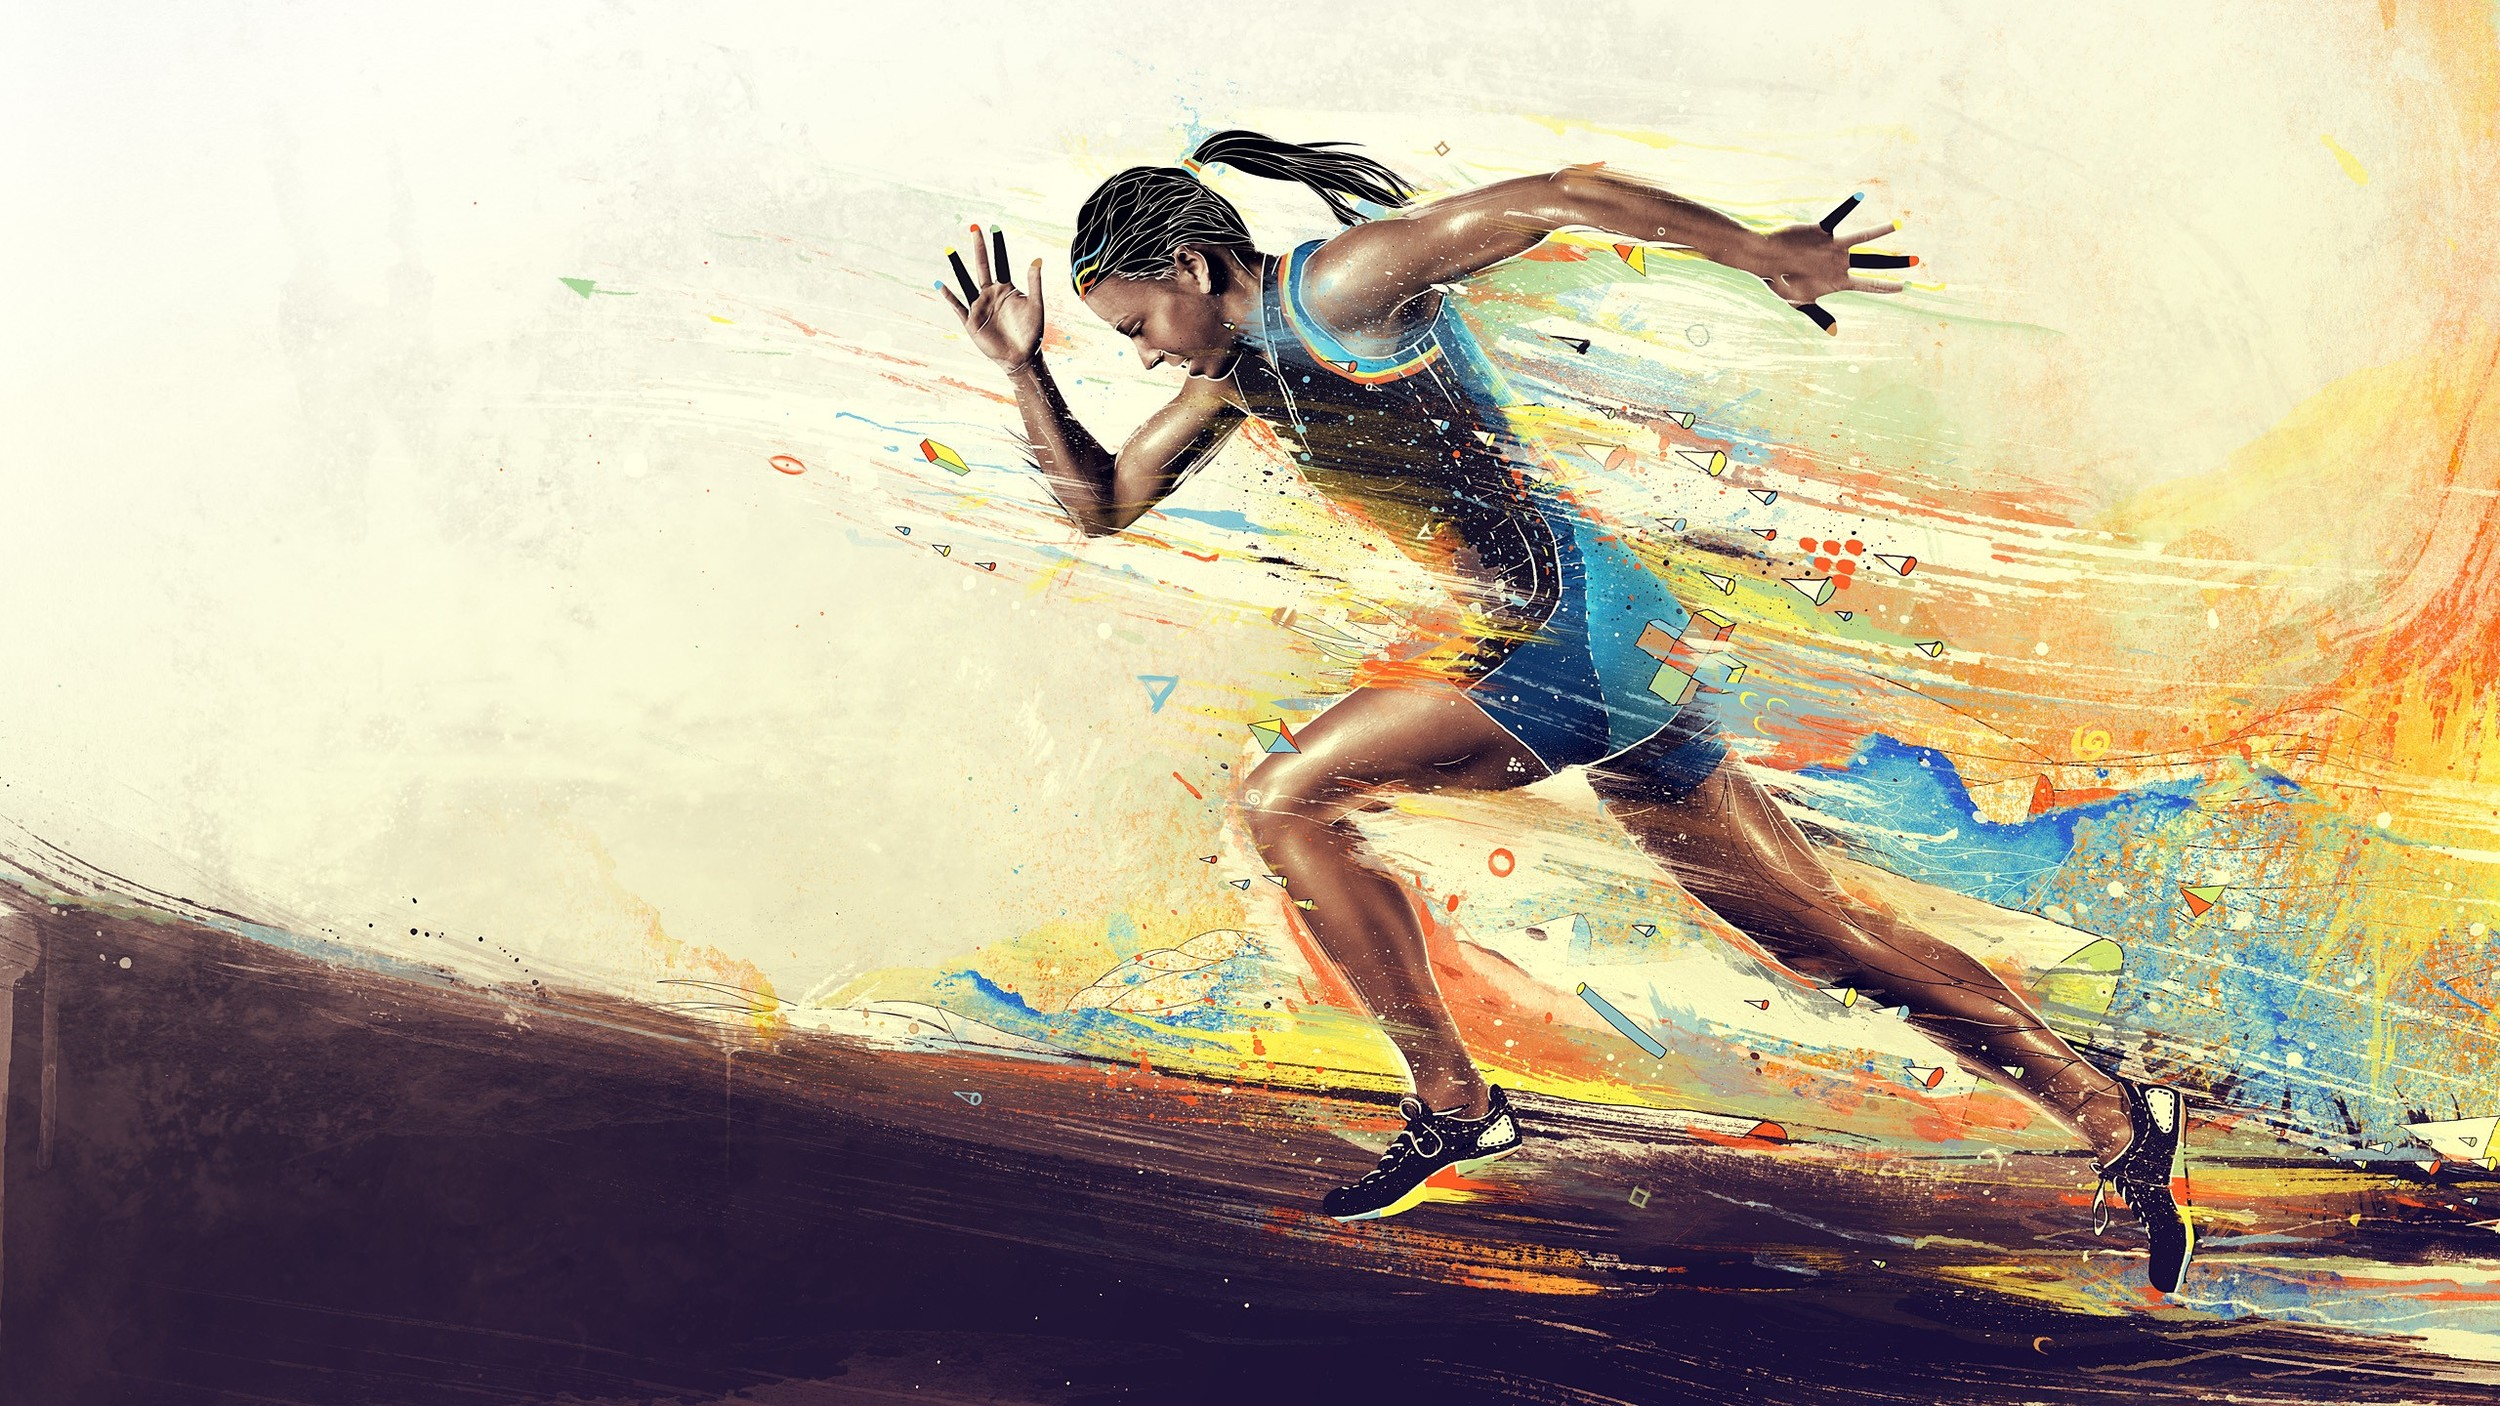 Are you as fast as you think you are?